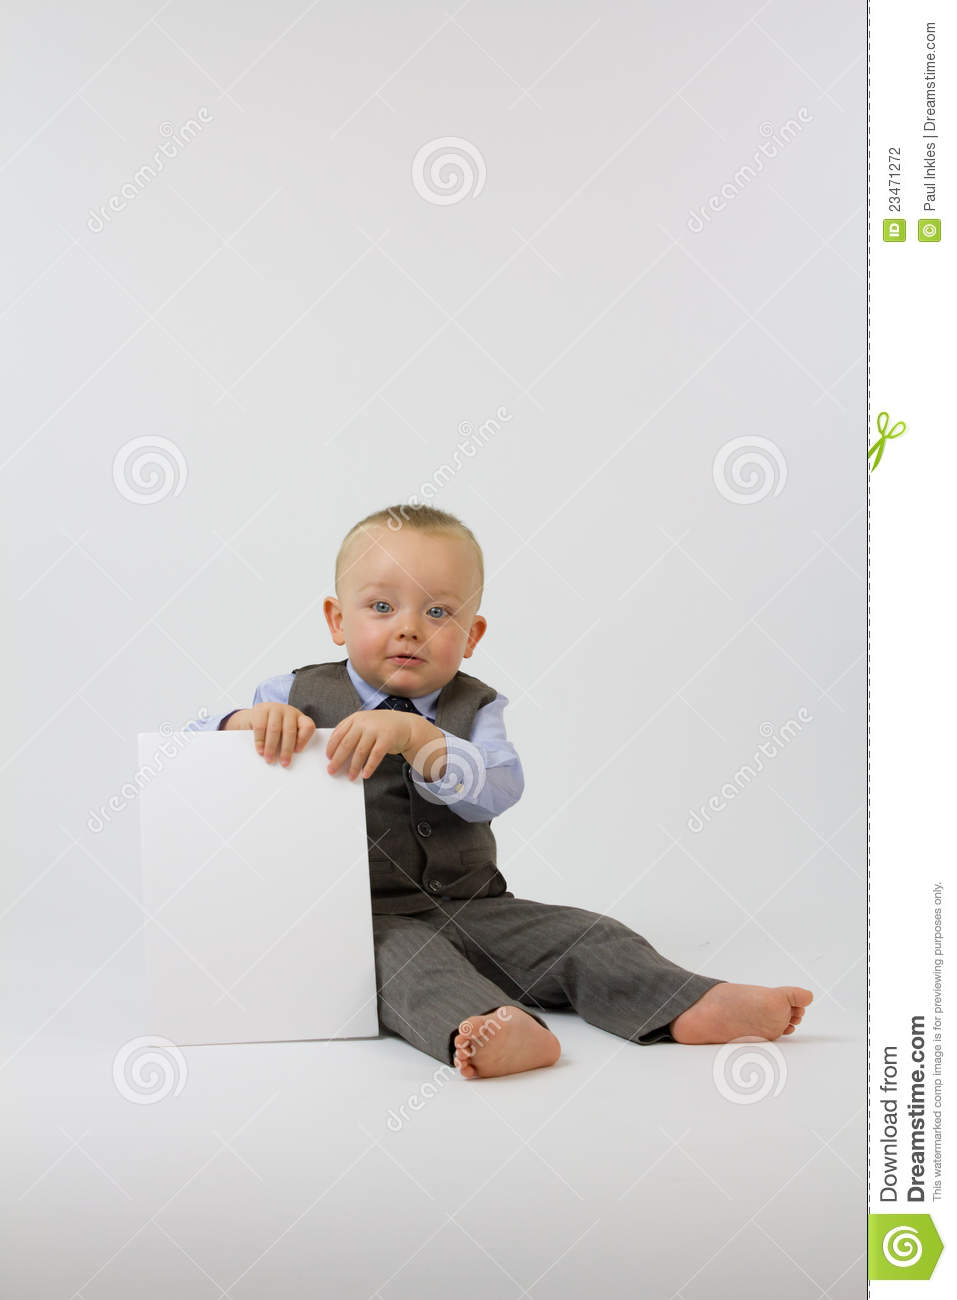 Baby In Business Suit